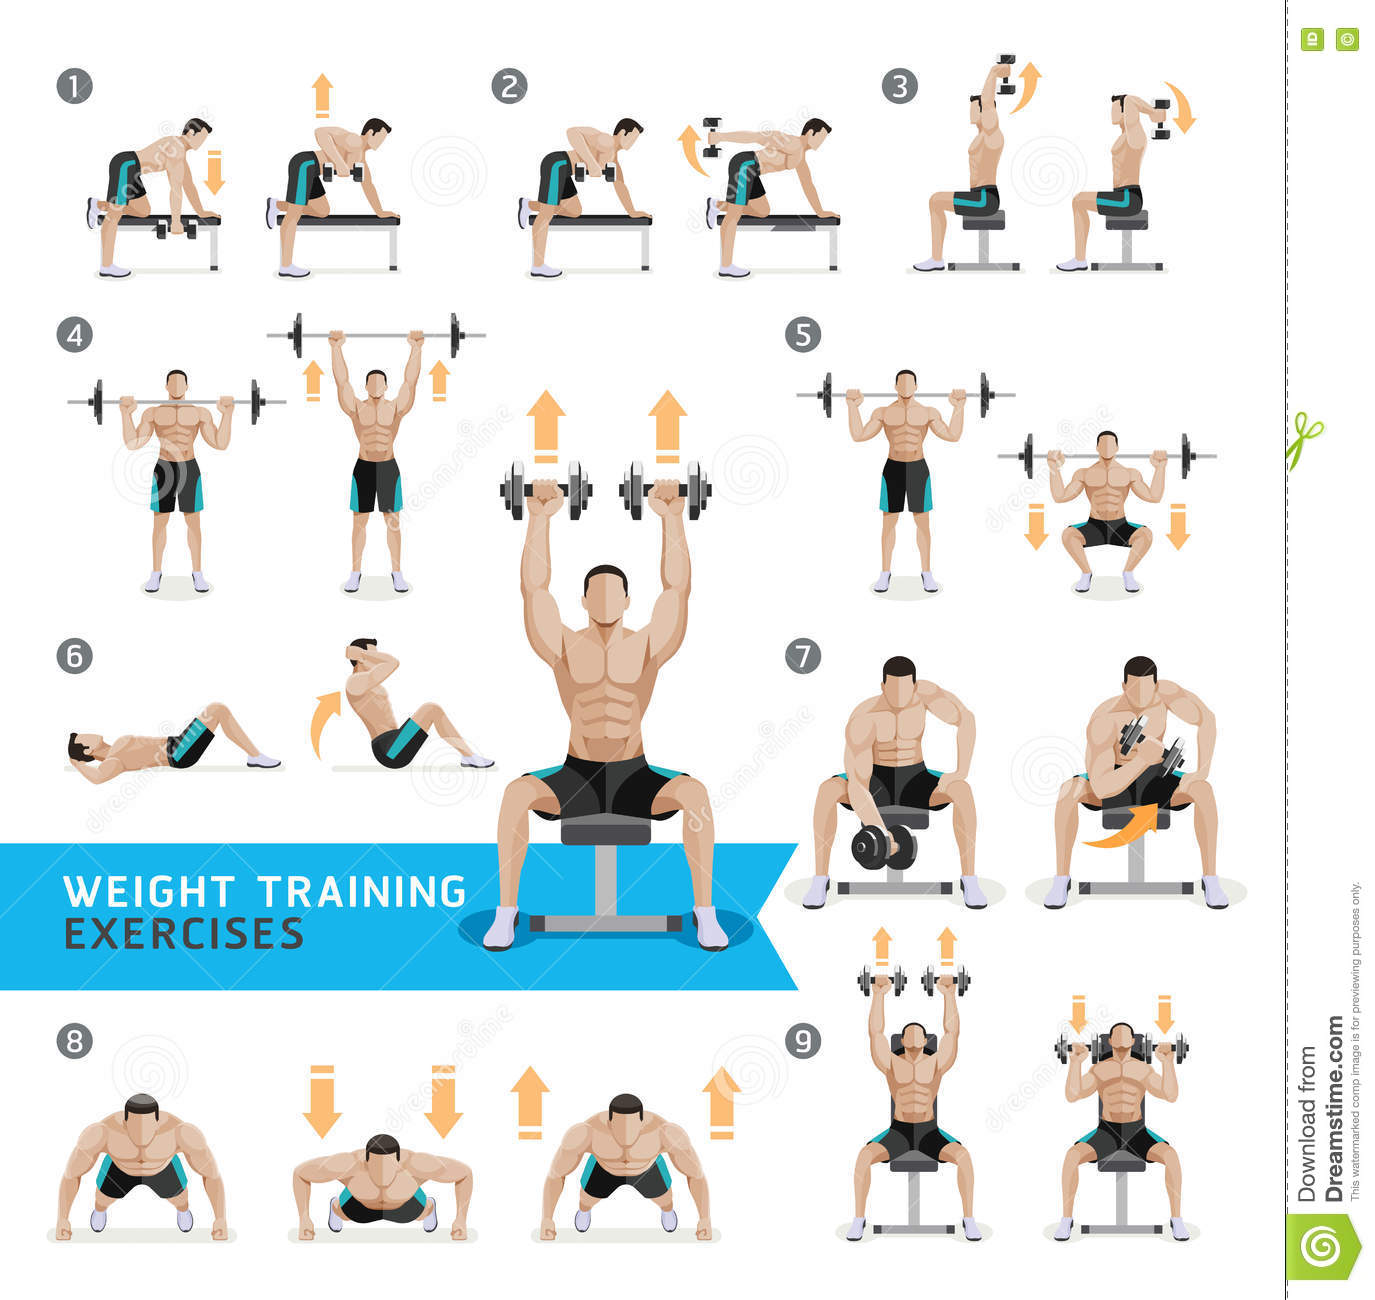 Weight Lifting Gym Fitness Workout Exercise Training Body: Dumbbell Exercises And Workouts Weight Training. Stock